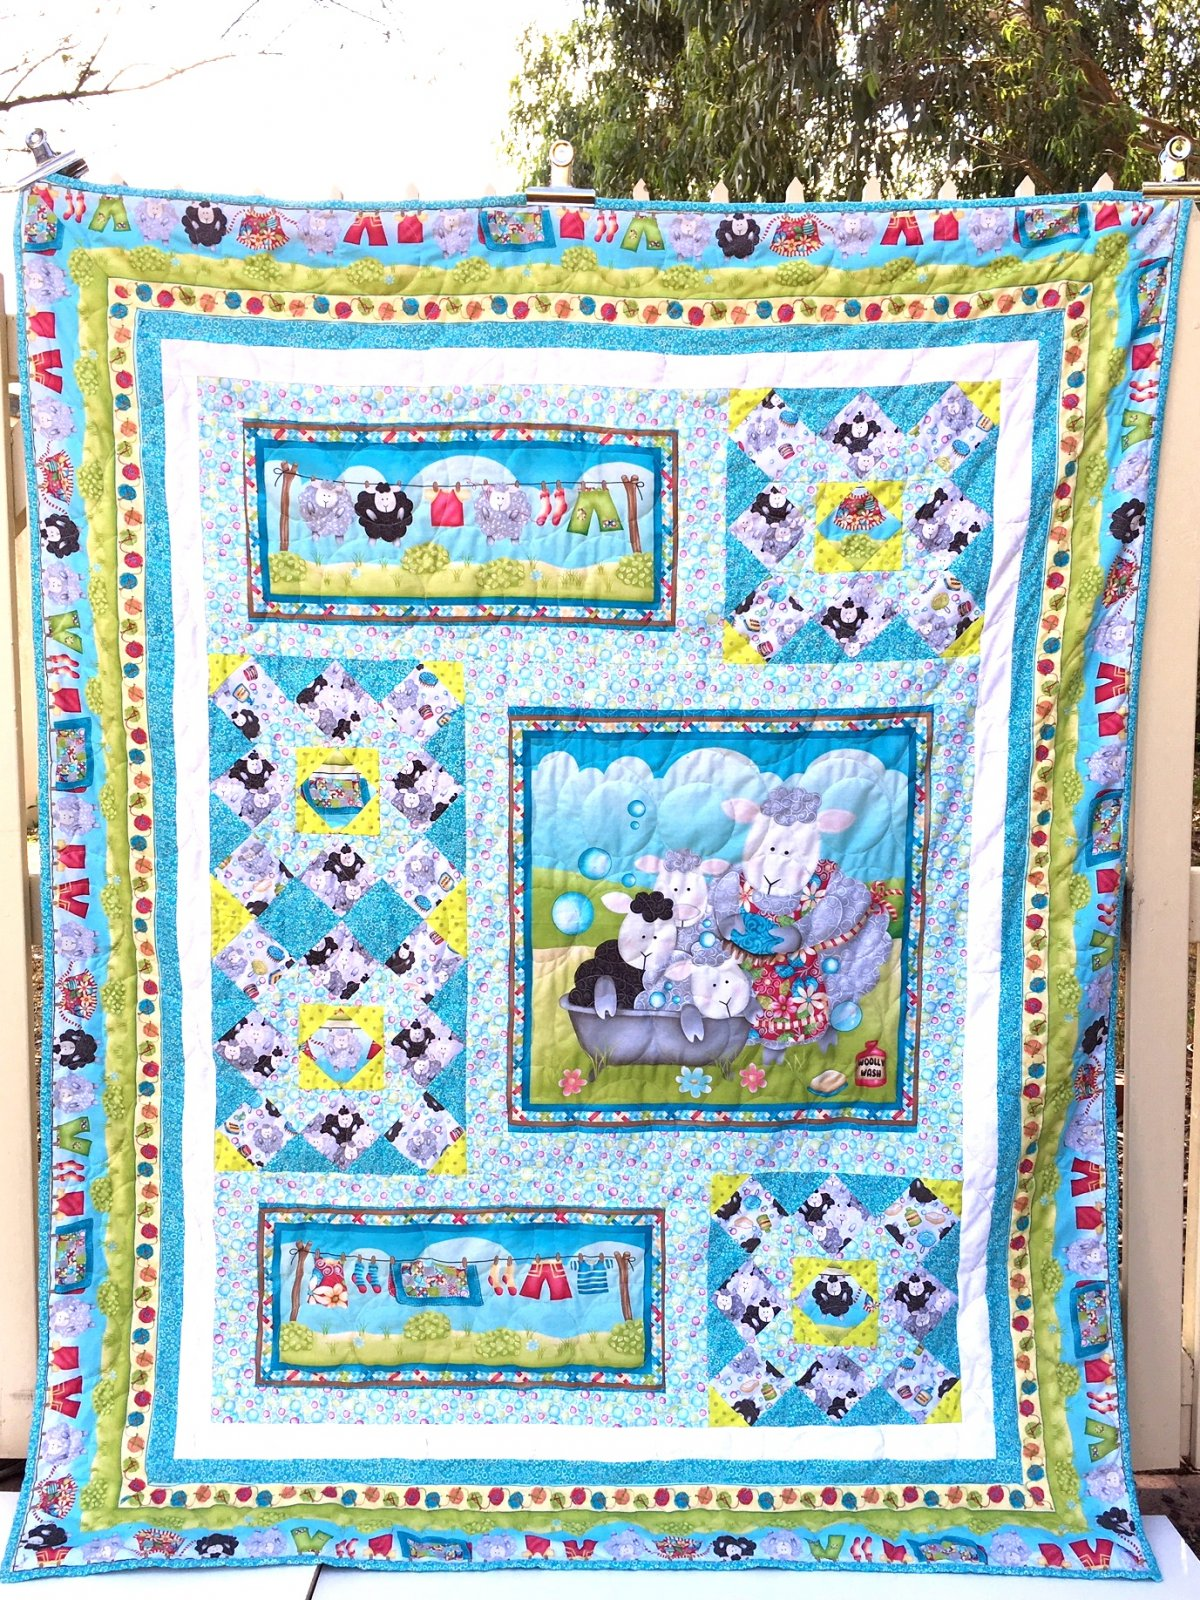 Splish Splash single bed quilt